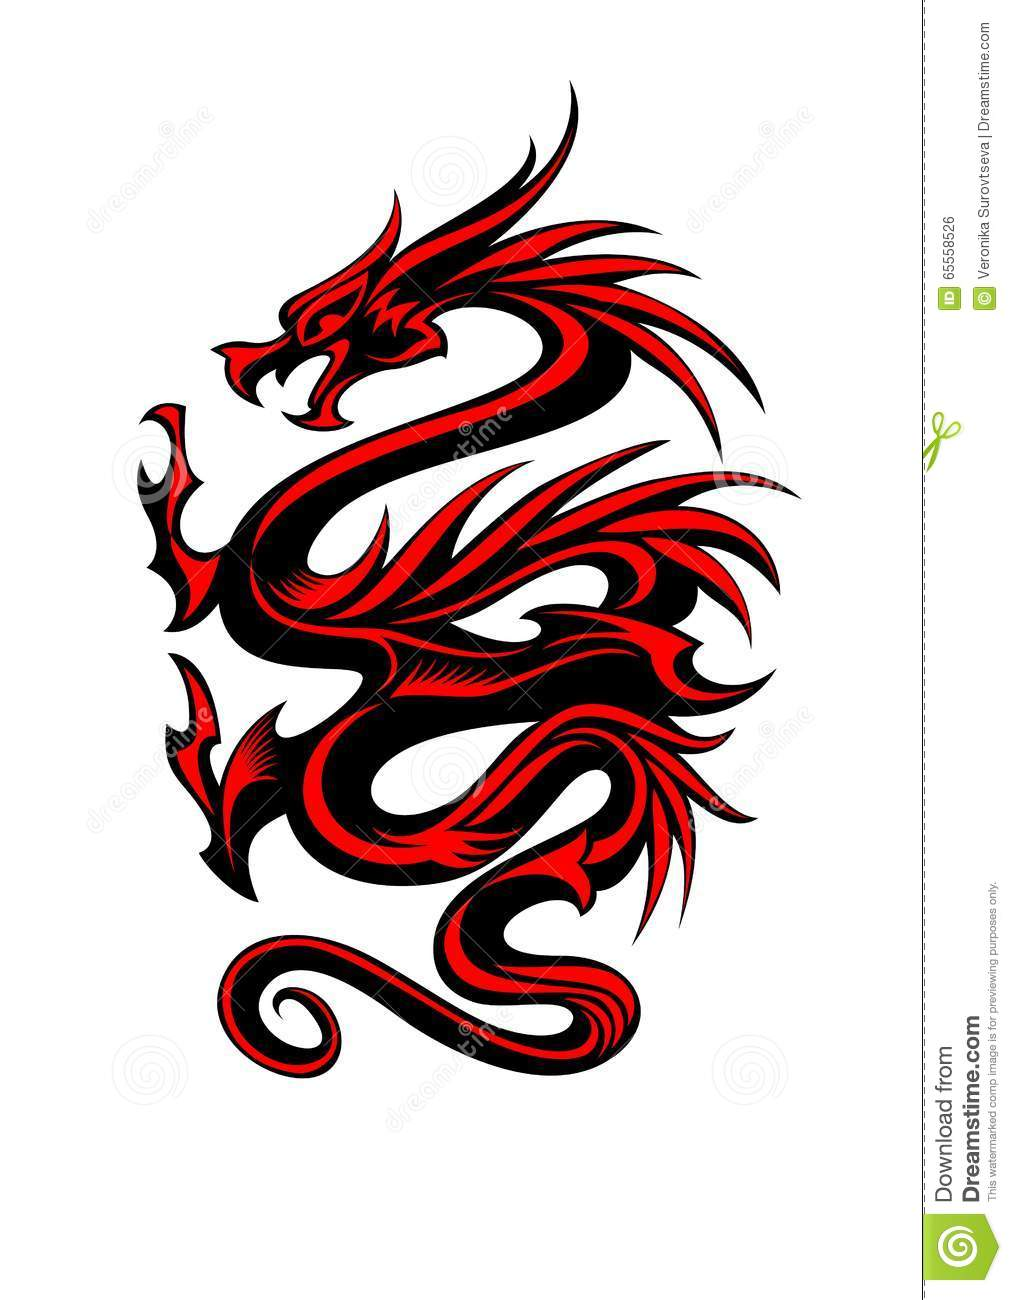 tribal dragon tattoo stock vector illustration of fantasy 65558526. Black Bedroom Furniture Sets. Home Design Ideas